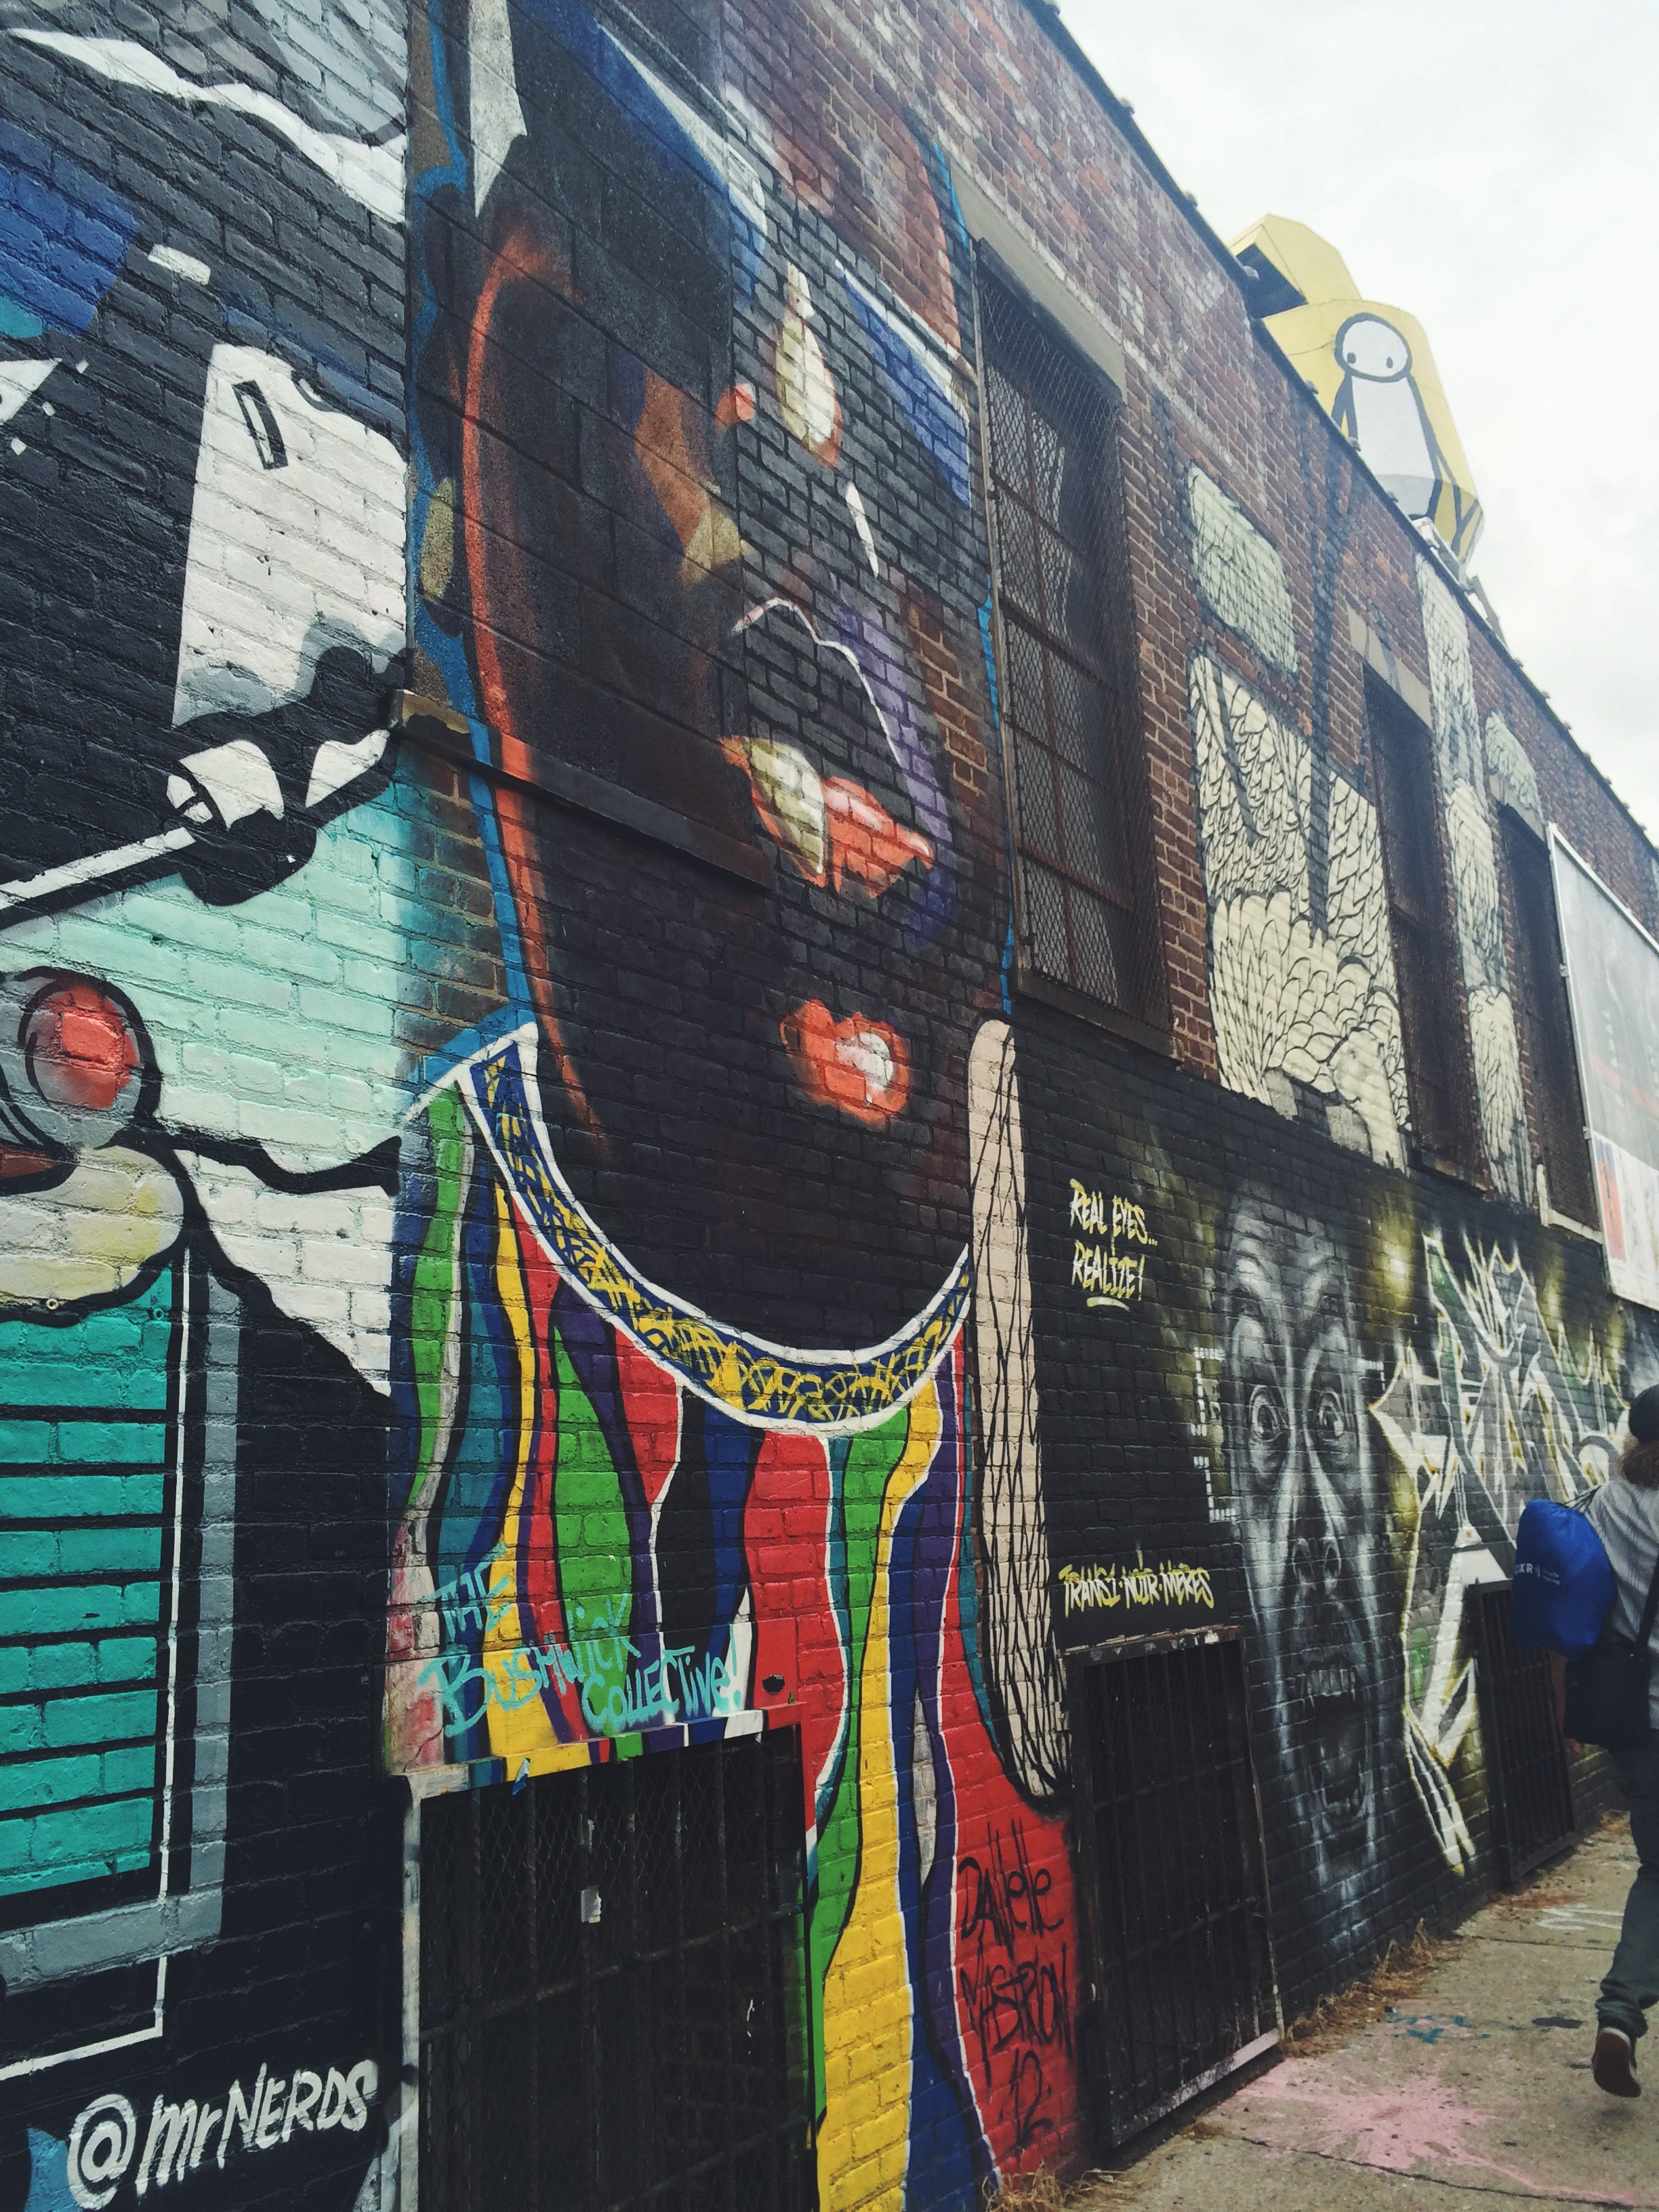 From the Graffiti tour in Brooklyn.